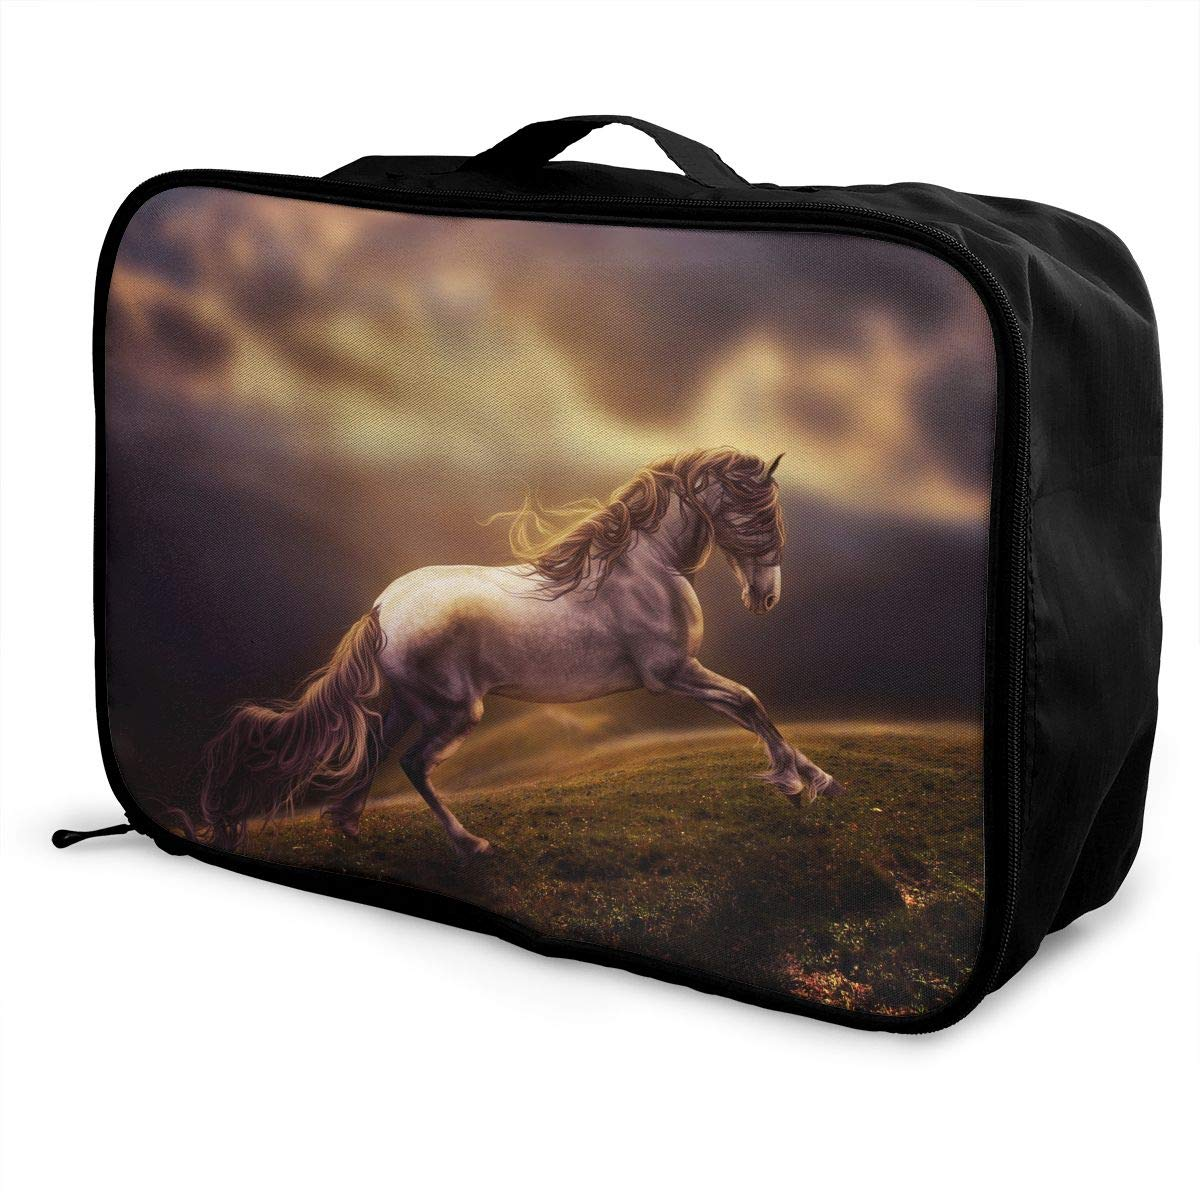 Travel Luggage Duffle Bag Lightweight Portable Handbag Fantasy Horse Print Large Capacity Waterproof Foldable Storage Tote